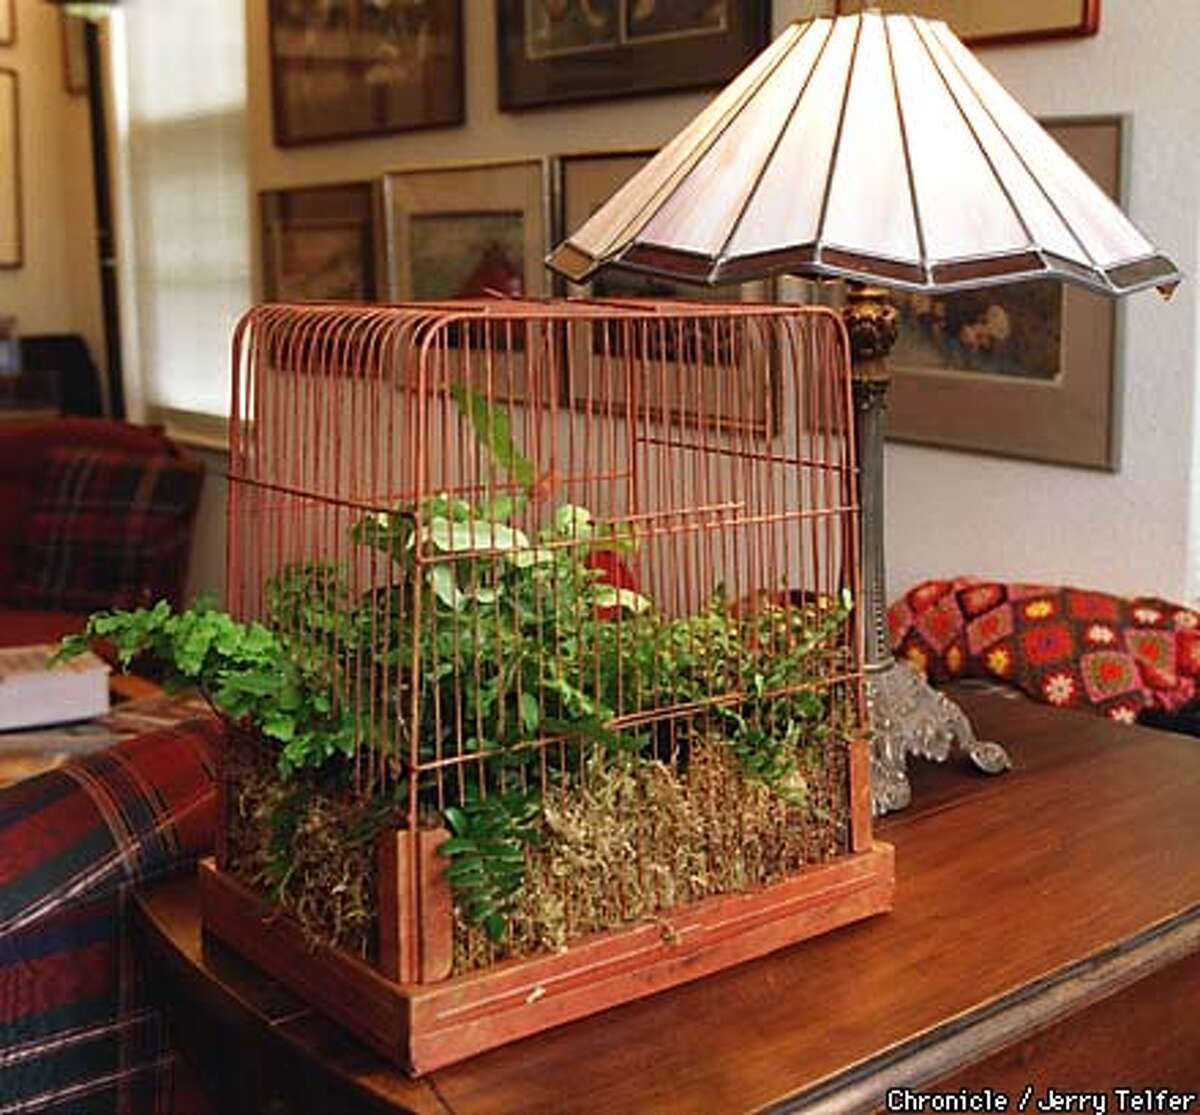 Antiqued birdcage gets a new role as a planter box. Individual plants can be left in their pots and replaced as needed without constantly repotting the whole thing. 10 Edgewater Ct. - San Rafael, CA BY JERRY TELFER/THE CHRONICLE